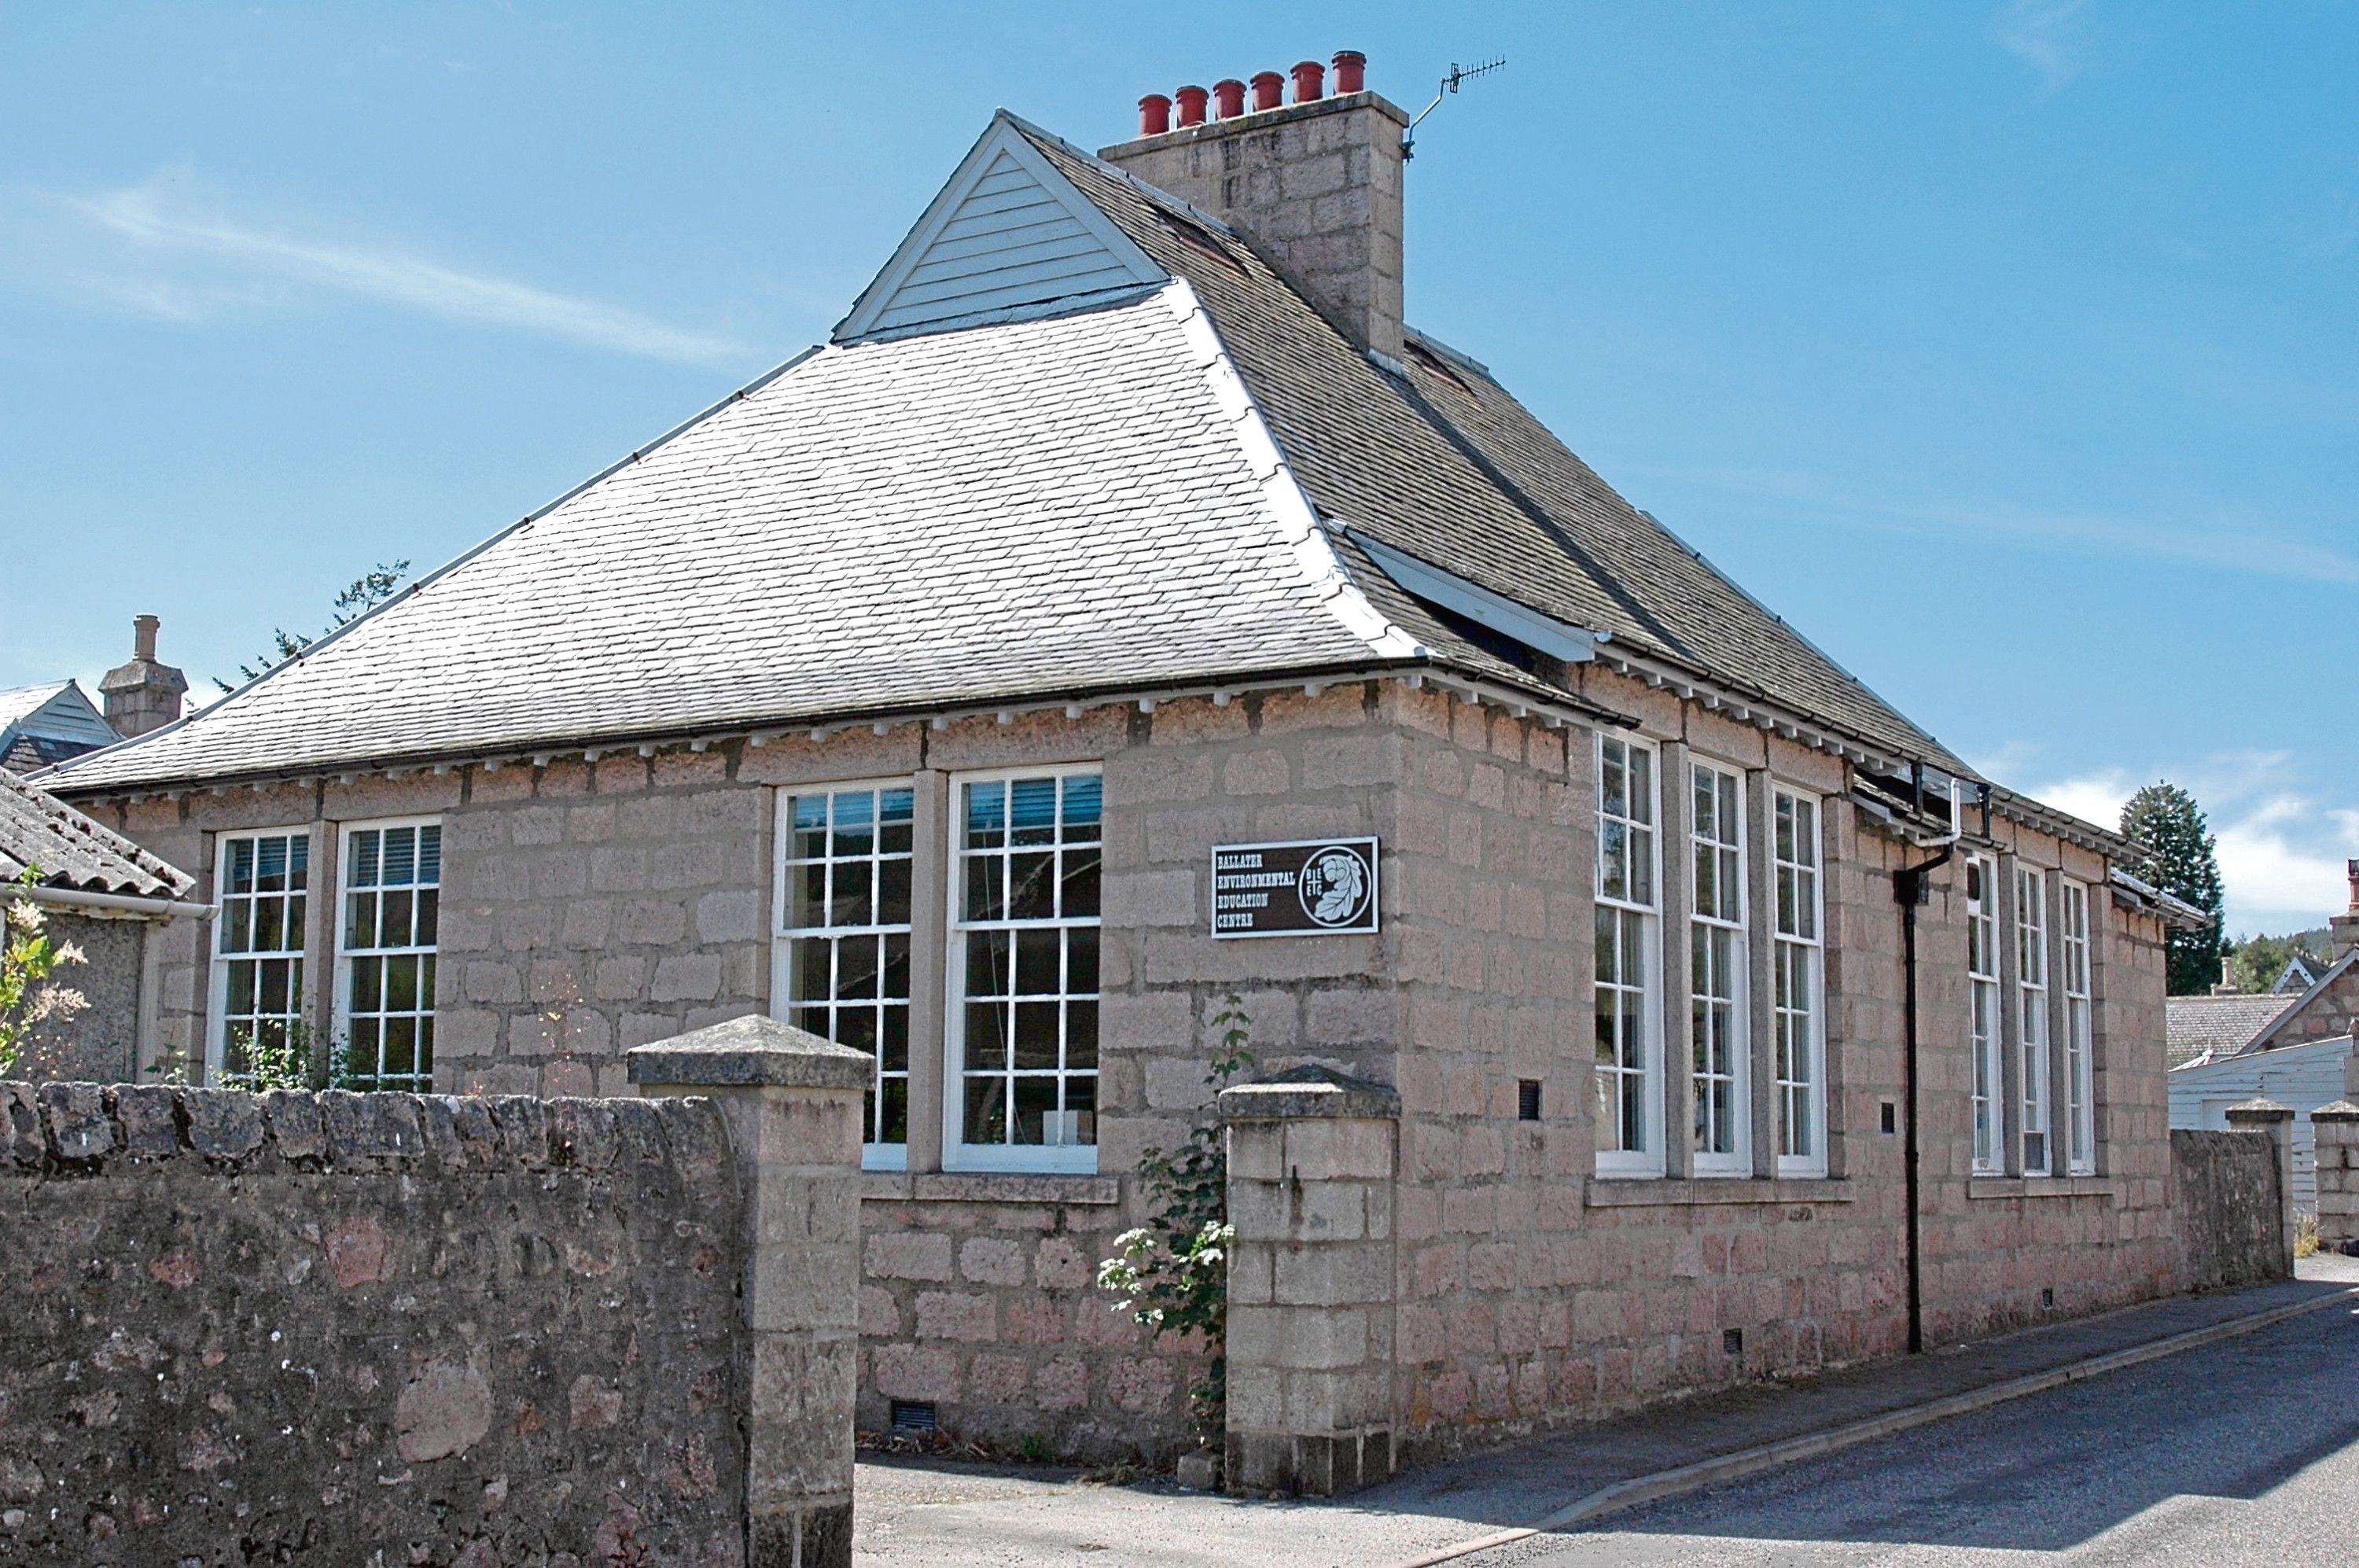 The C-listed building in Ballater